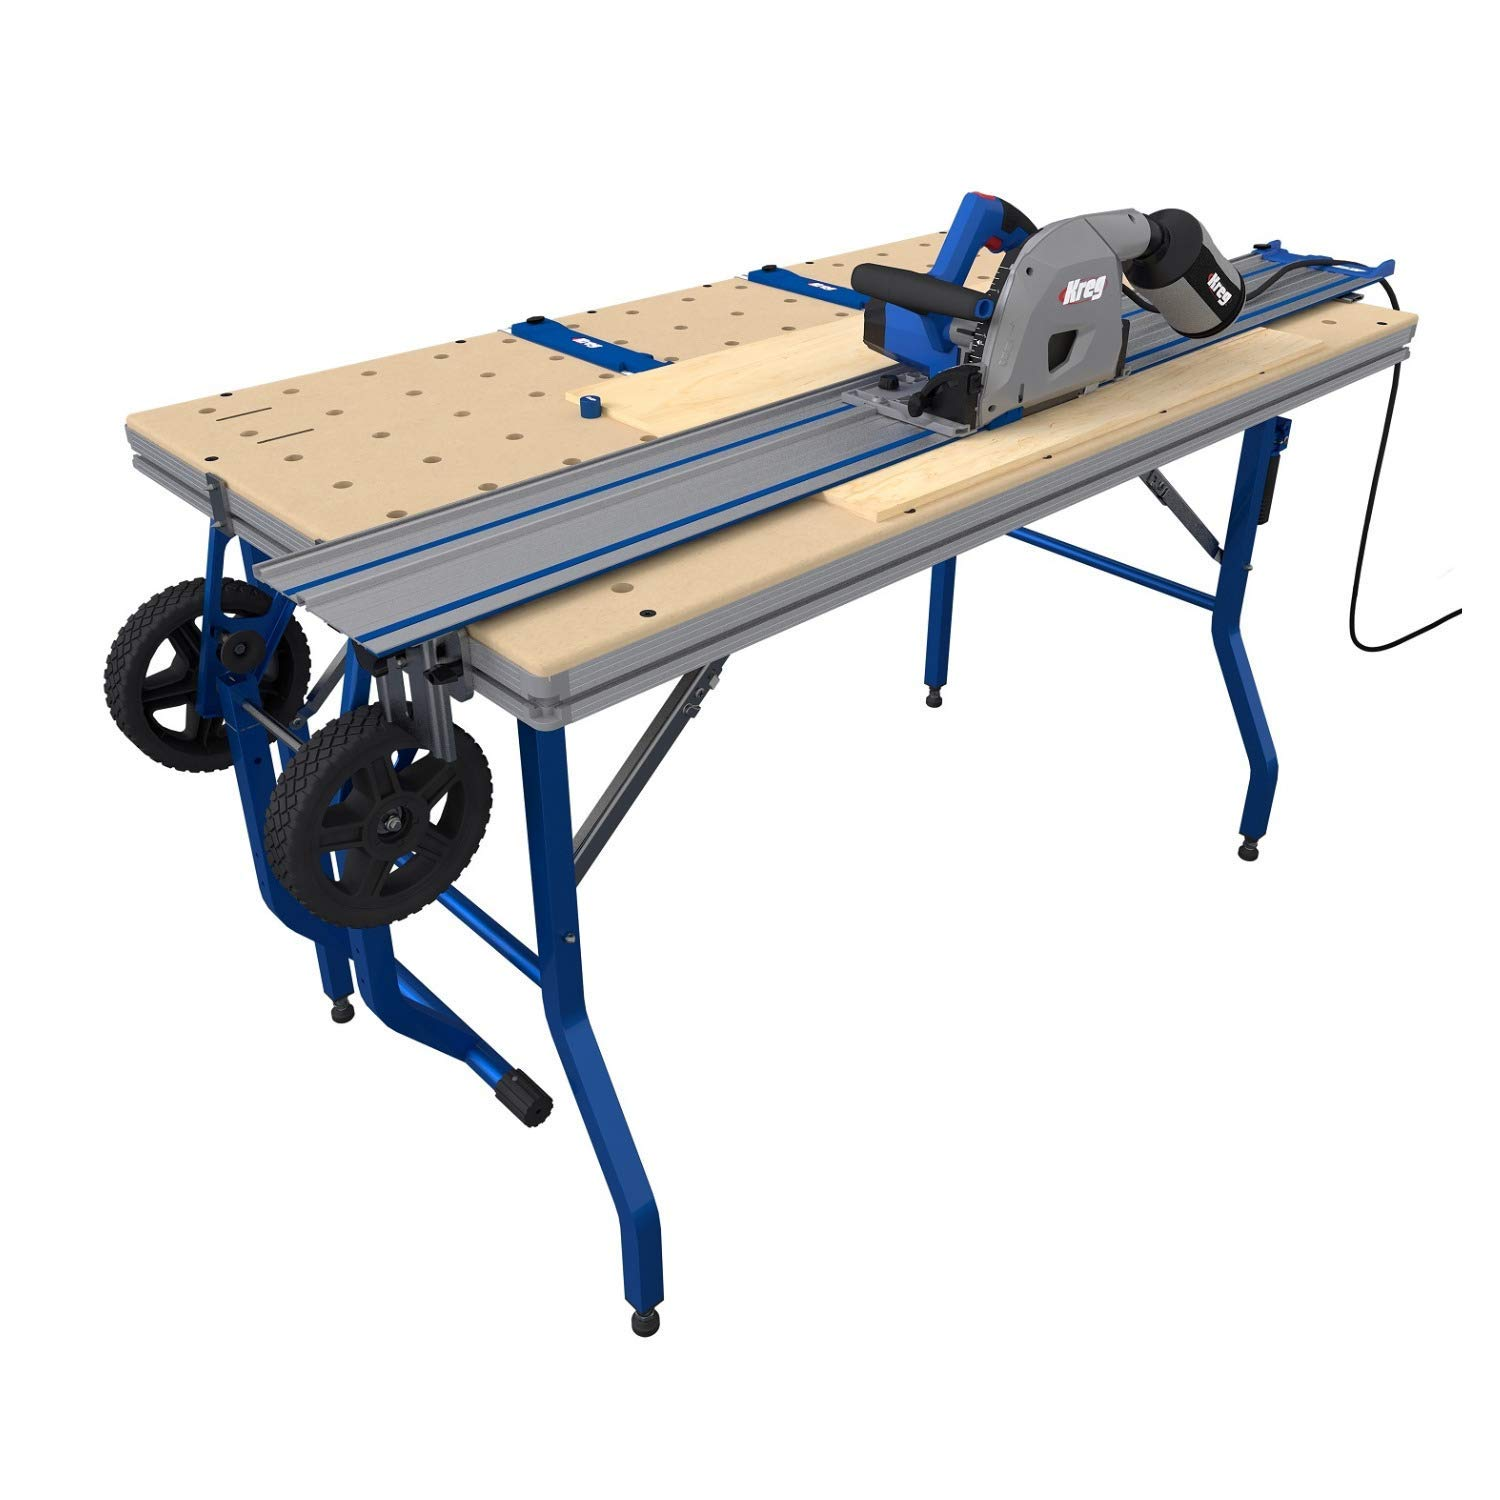 Kreg ACS3000 Adaptive Cutting System Plunge Saw & 62'' Guide Track With Project Table by KREG